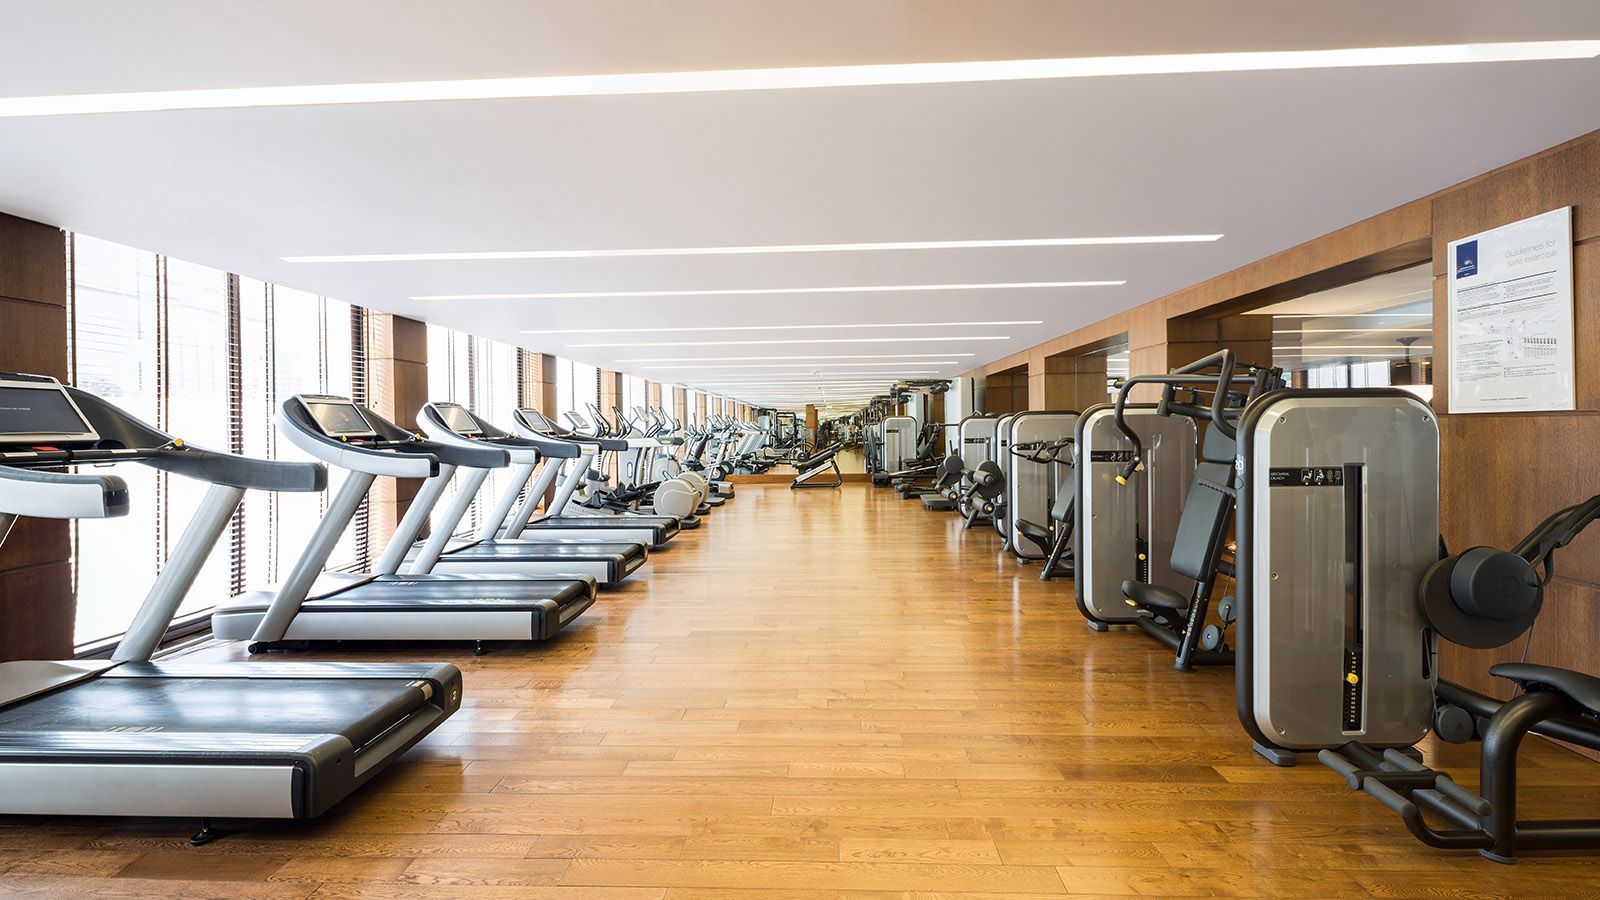 Gym at Metropol Palace